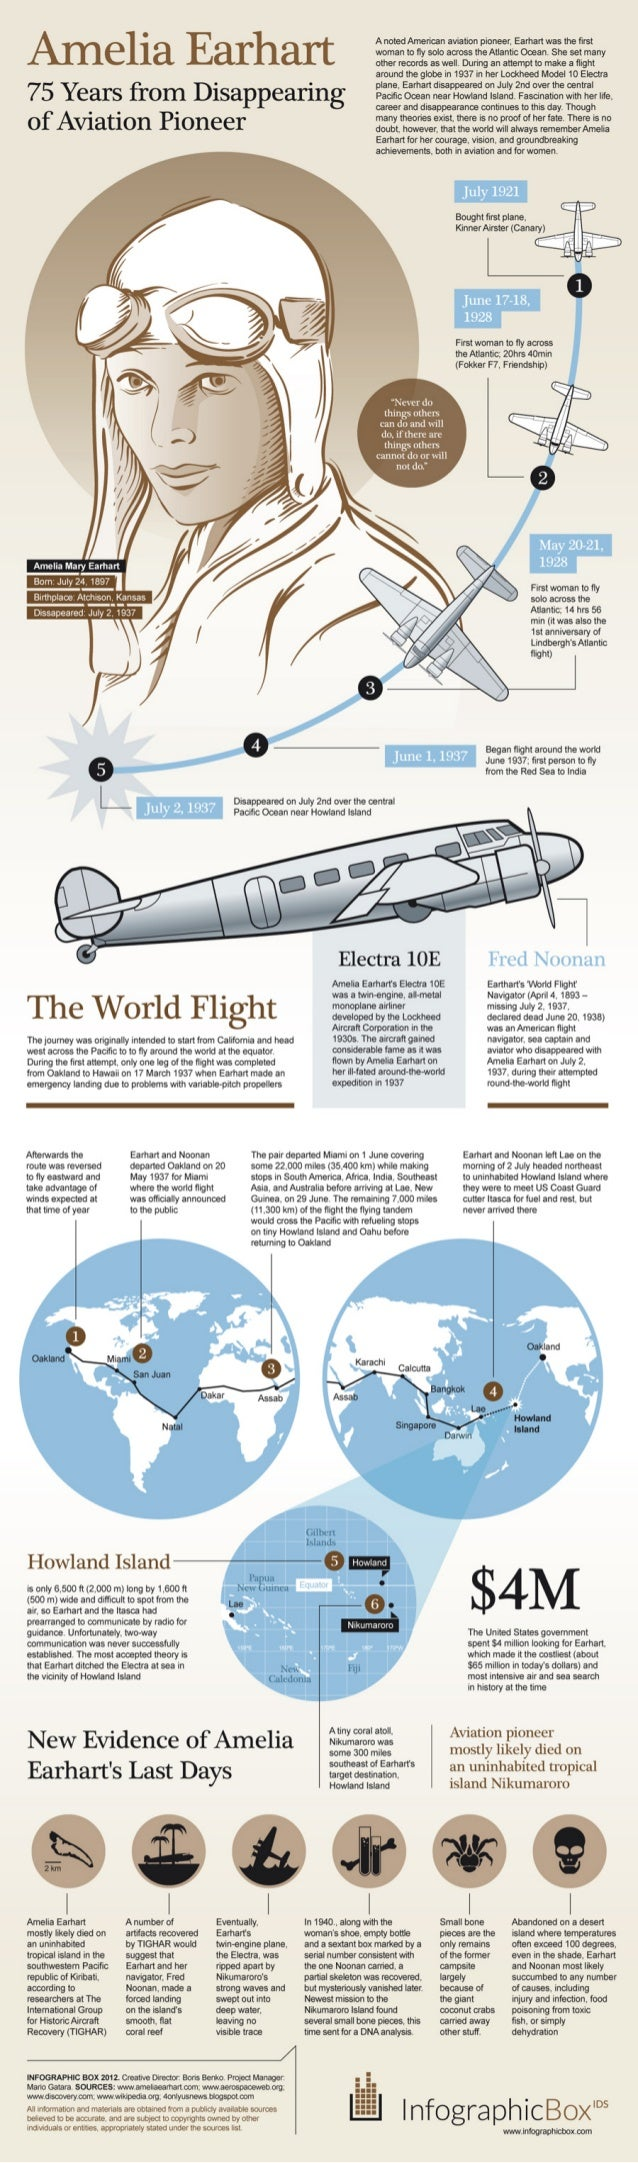 Amelia Earhart's Disappearance - 75th Anniversary #INFOGRAPHIC